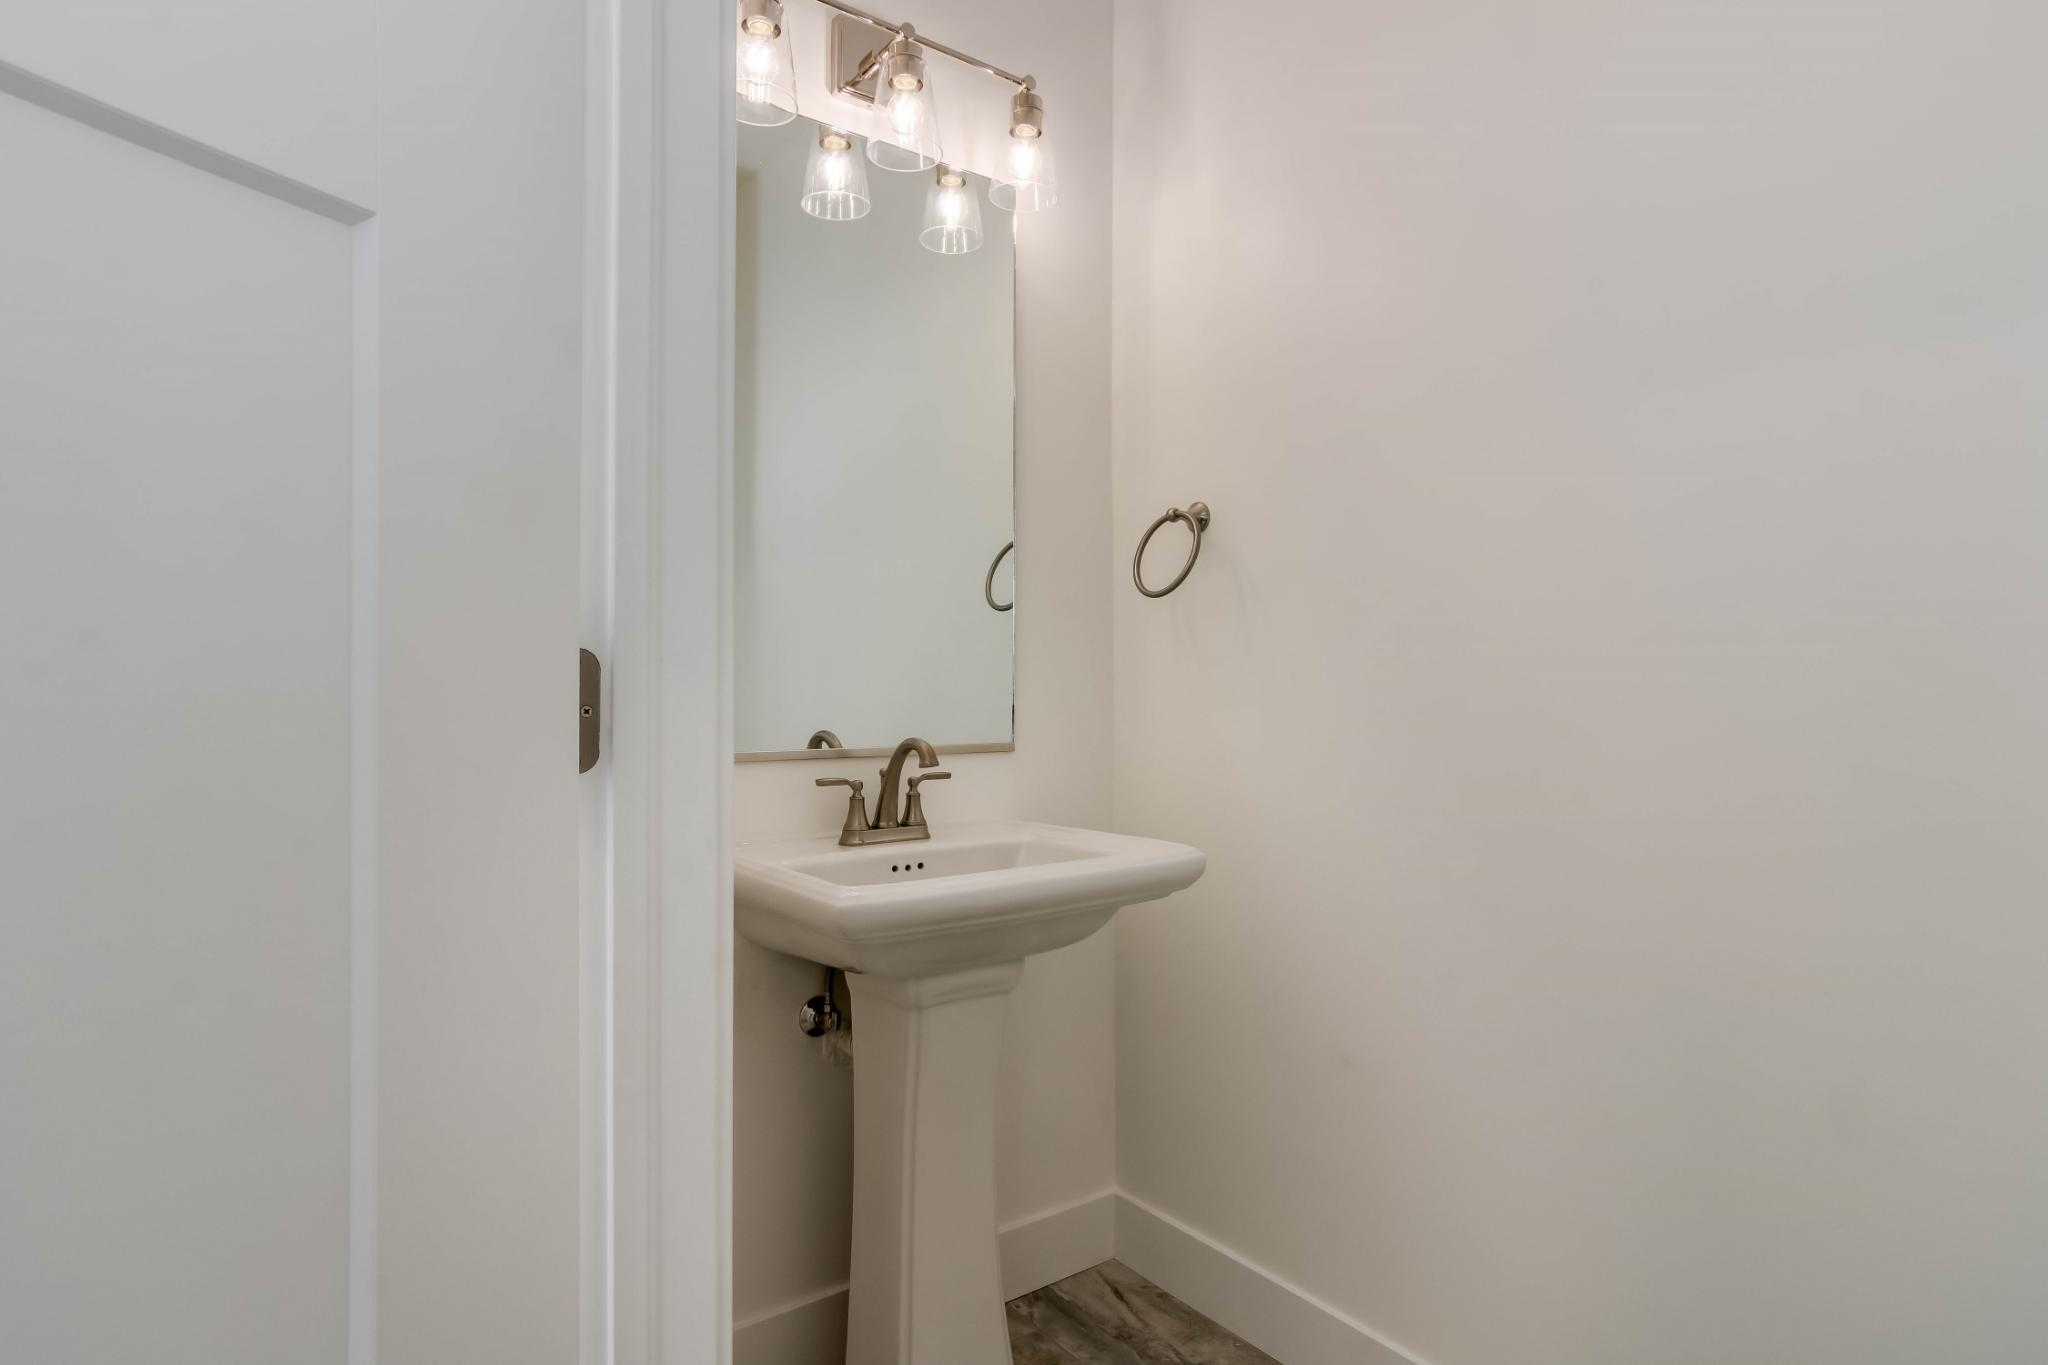 Bathroom featured in the 10771 S. Lamond Dr. By Destination Homes in Salt Lake City-Ogden, UT